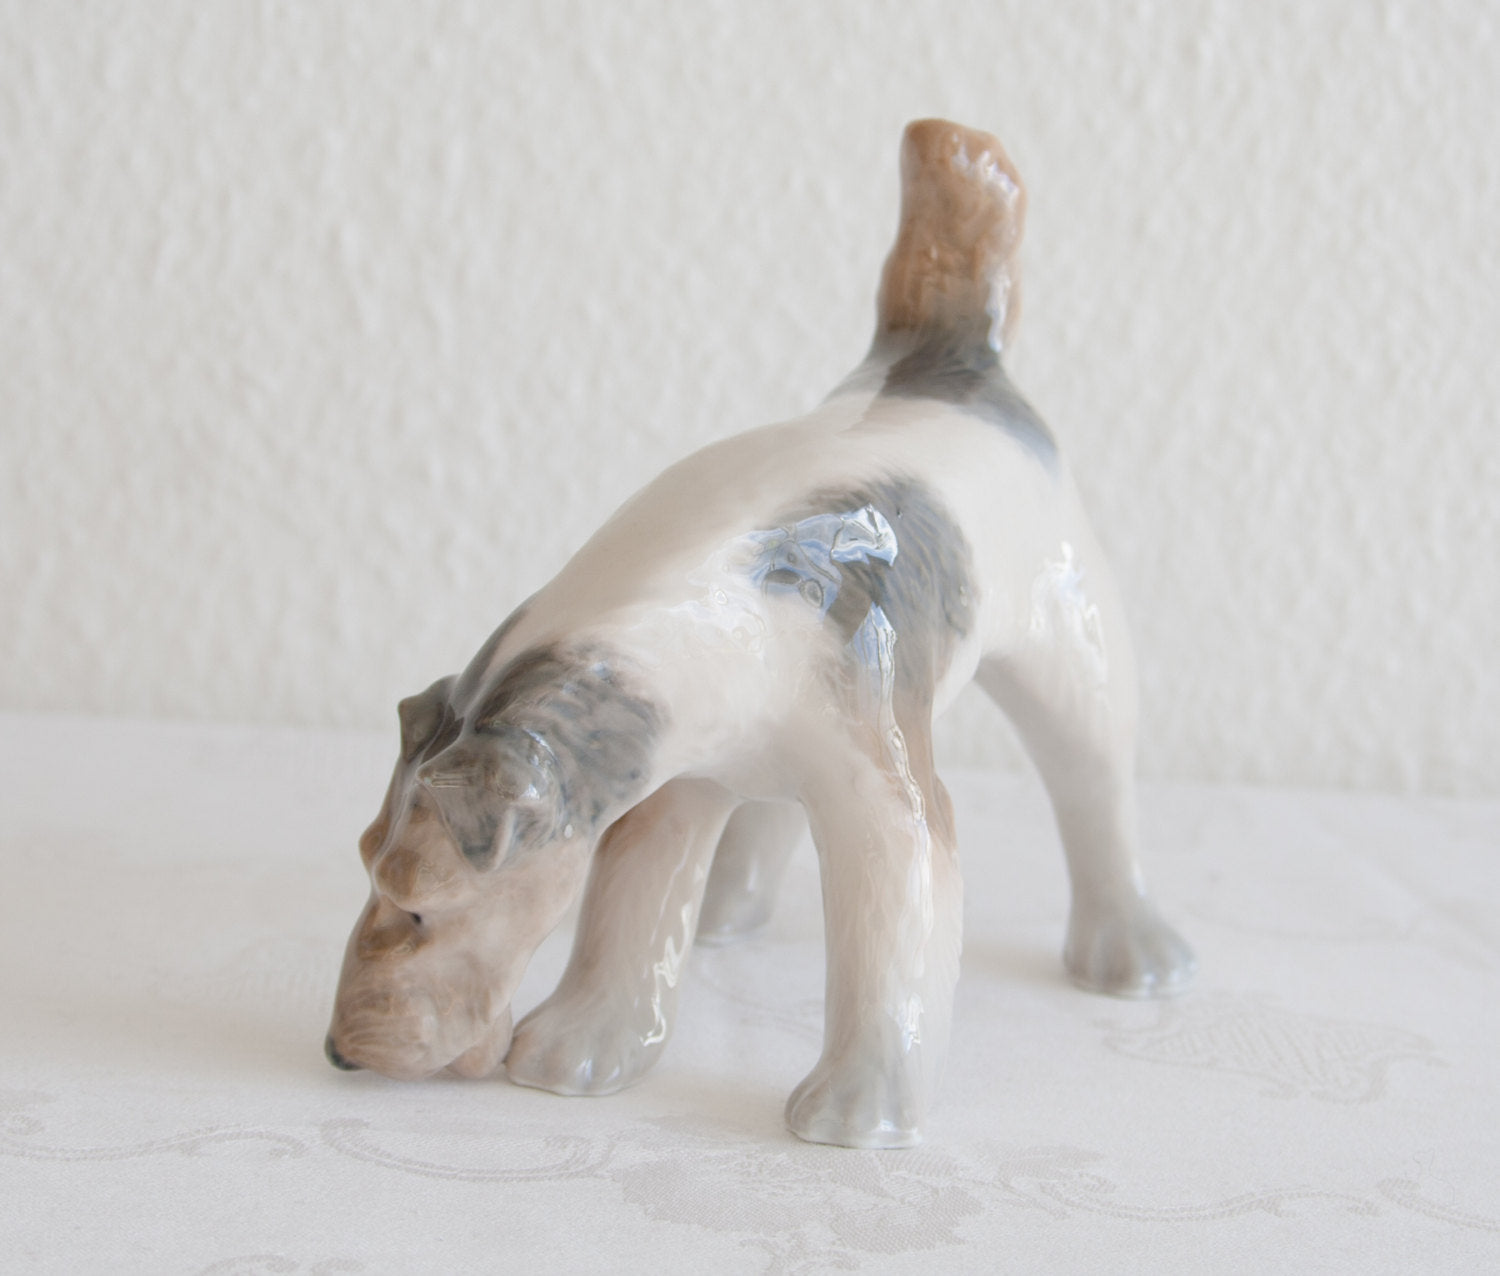 Royal Copenhagen PLATEN HALLERMUNDT Wire Haired Fox Terrier Porcelain Figurine # 3020 - Mollaris.com